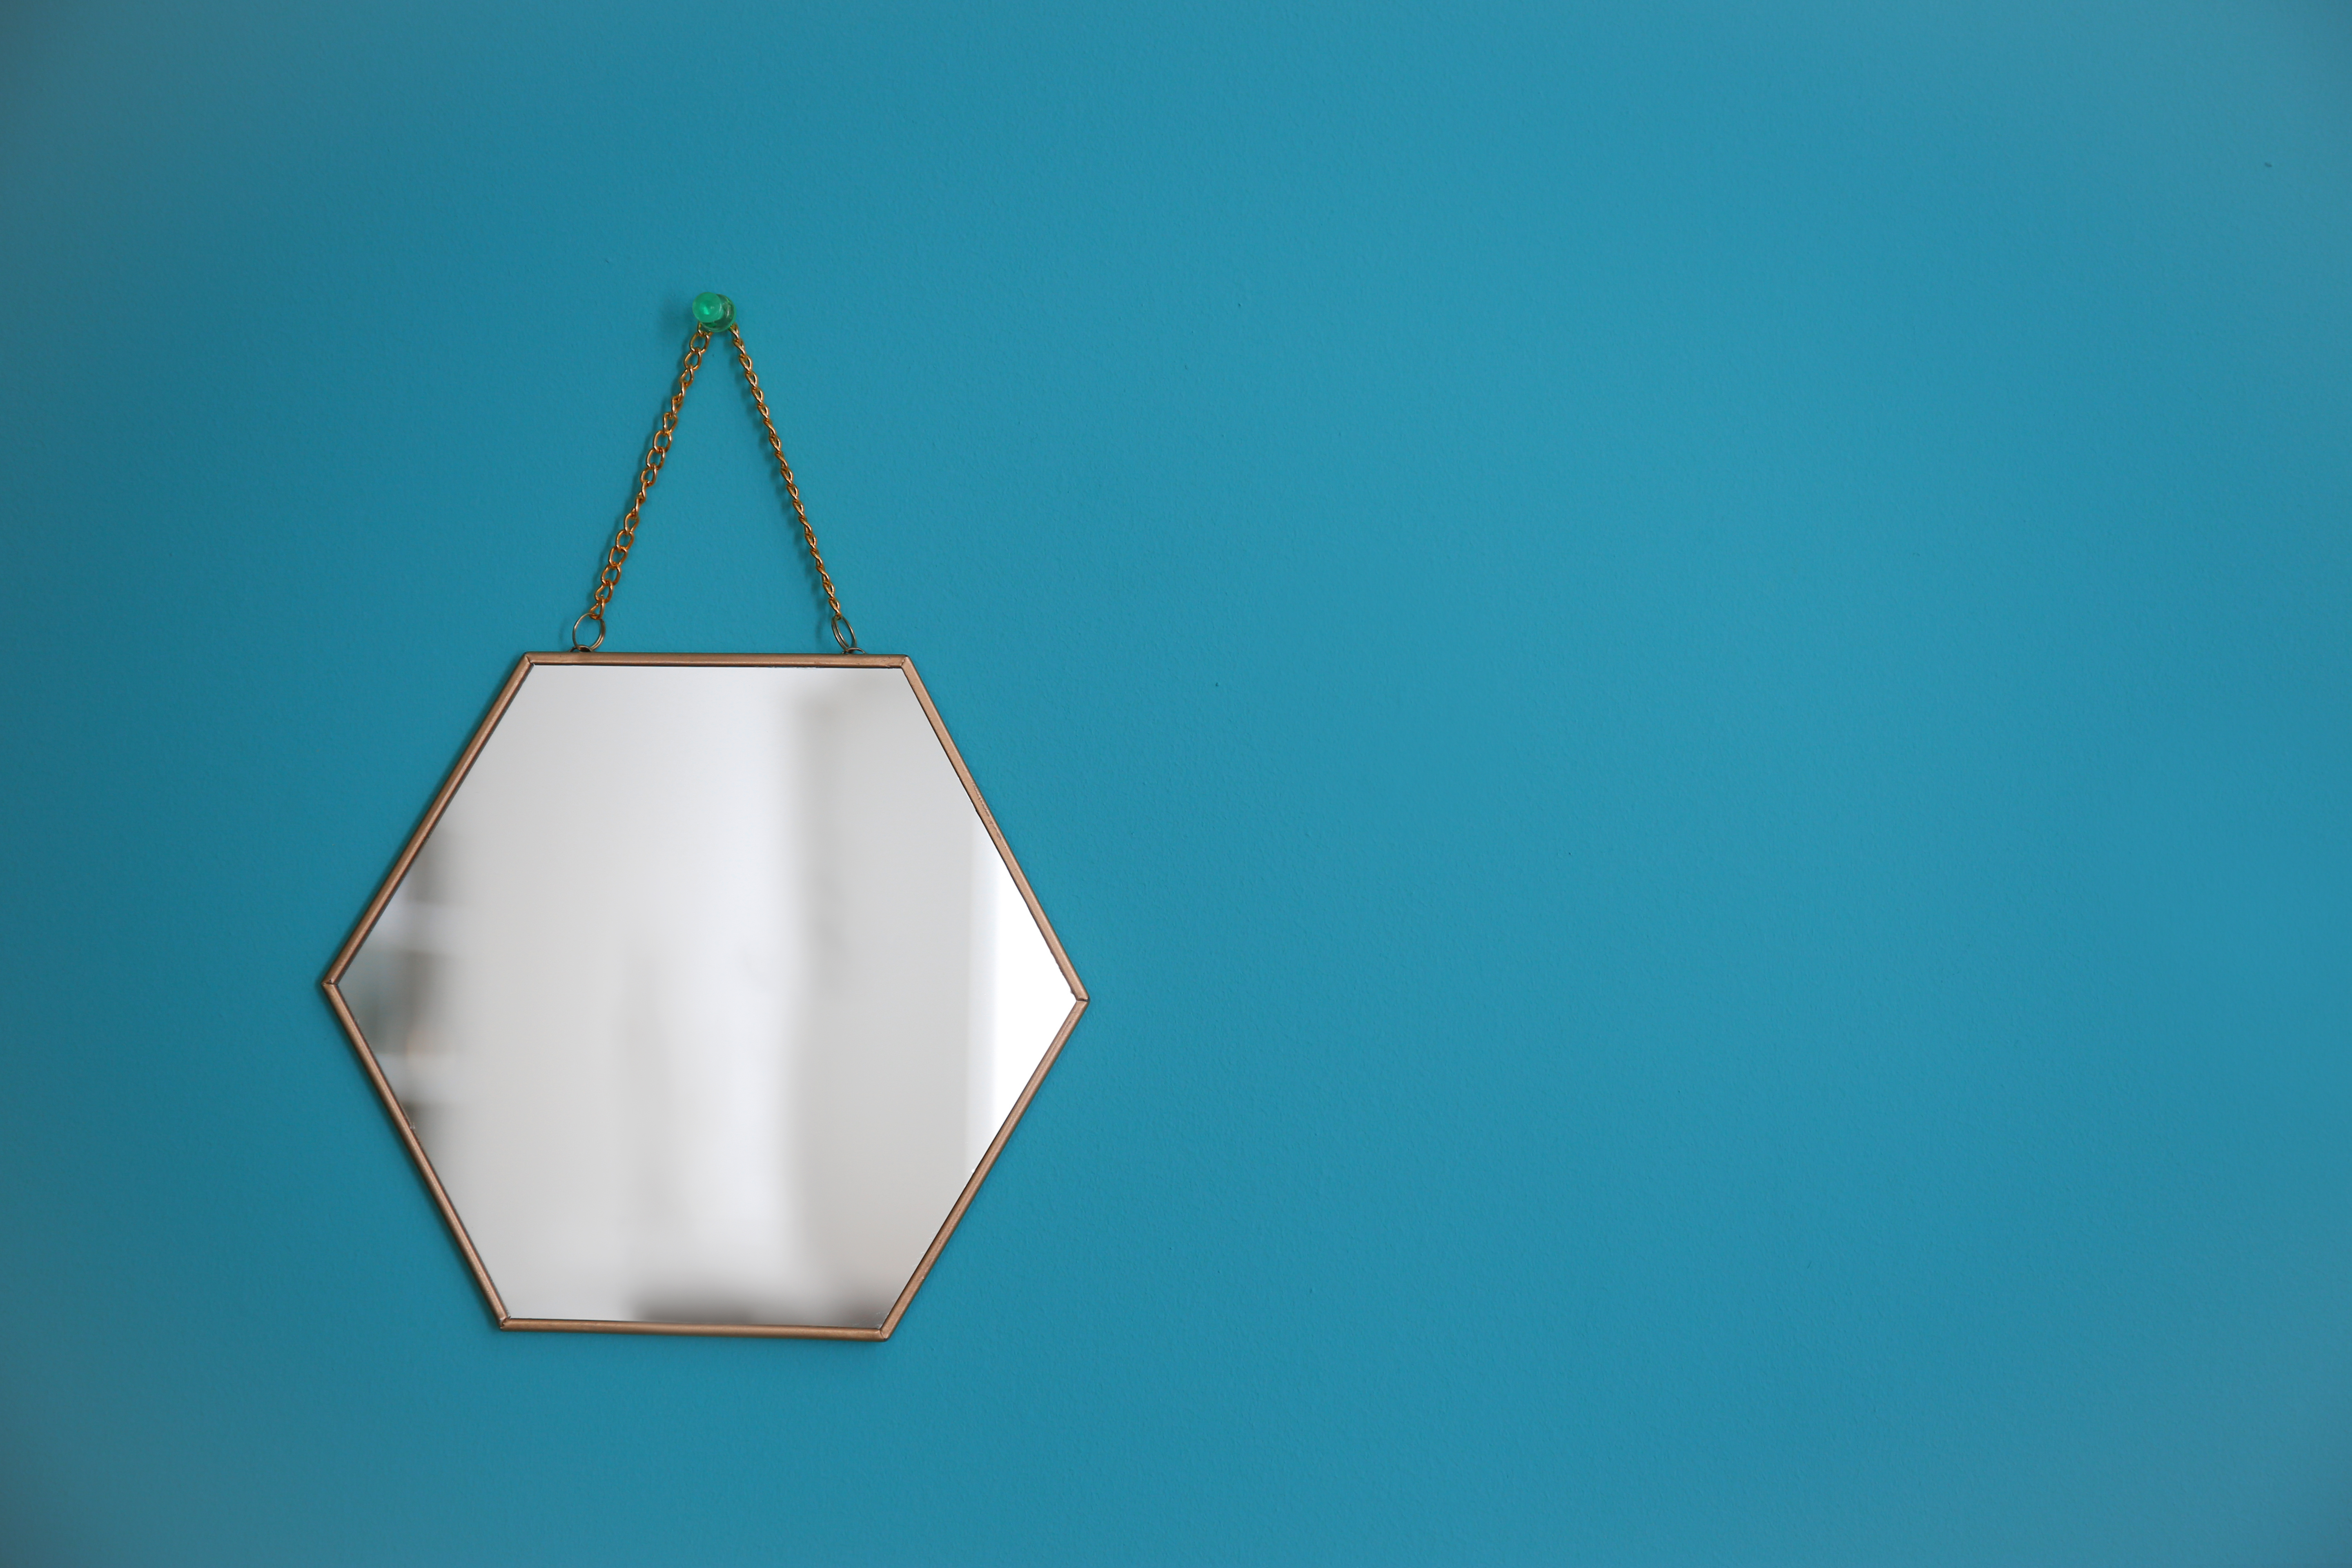 Mirror hanging on empty color wall